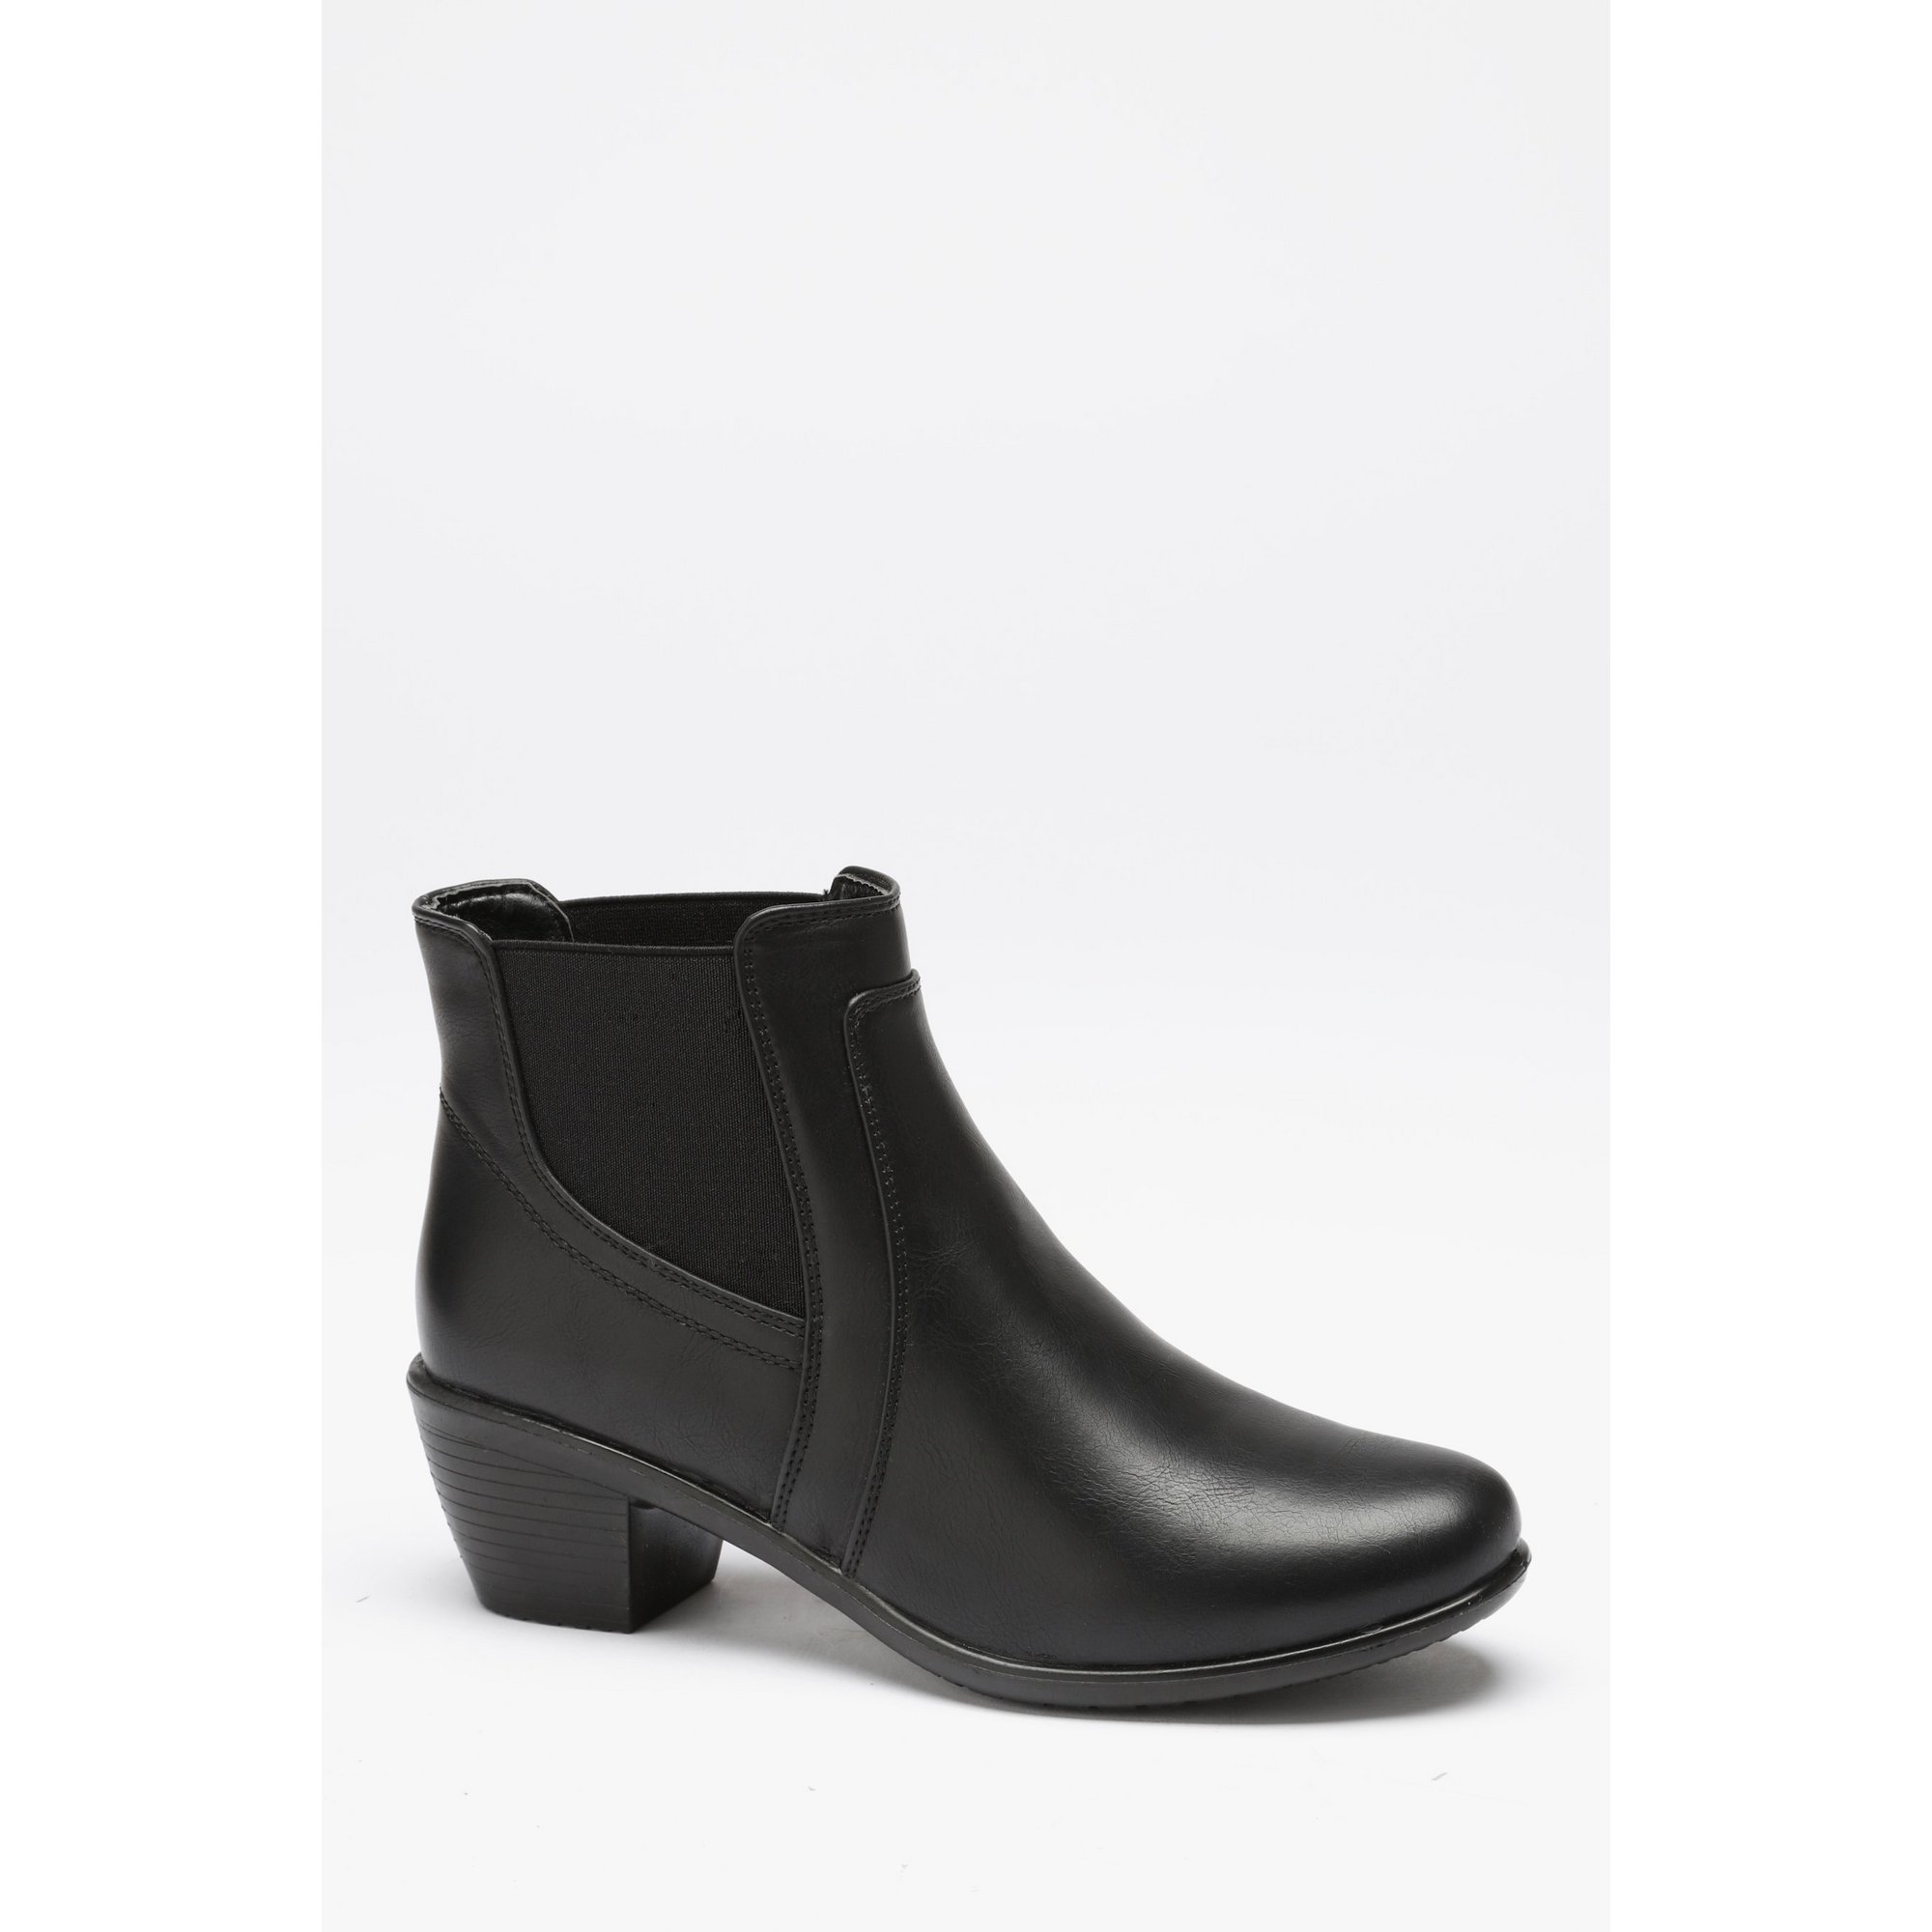 Image of Cushion Walk Double Gusset Ankle Black Boots